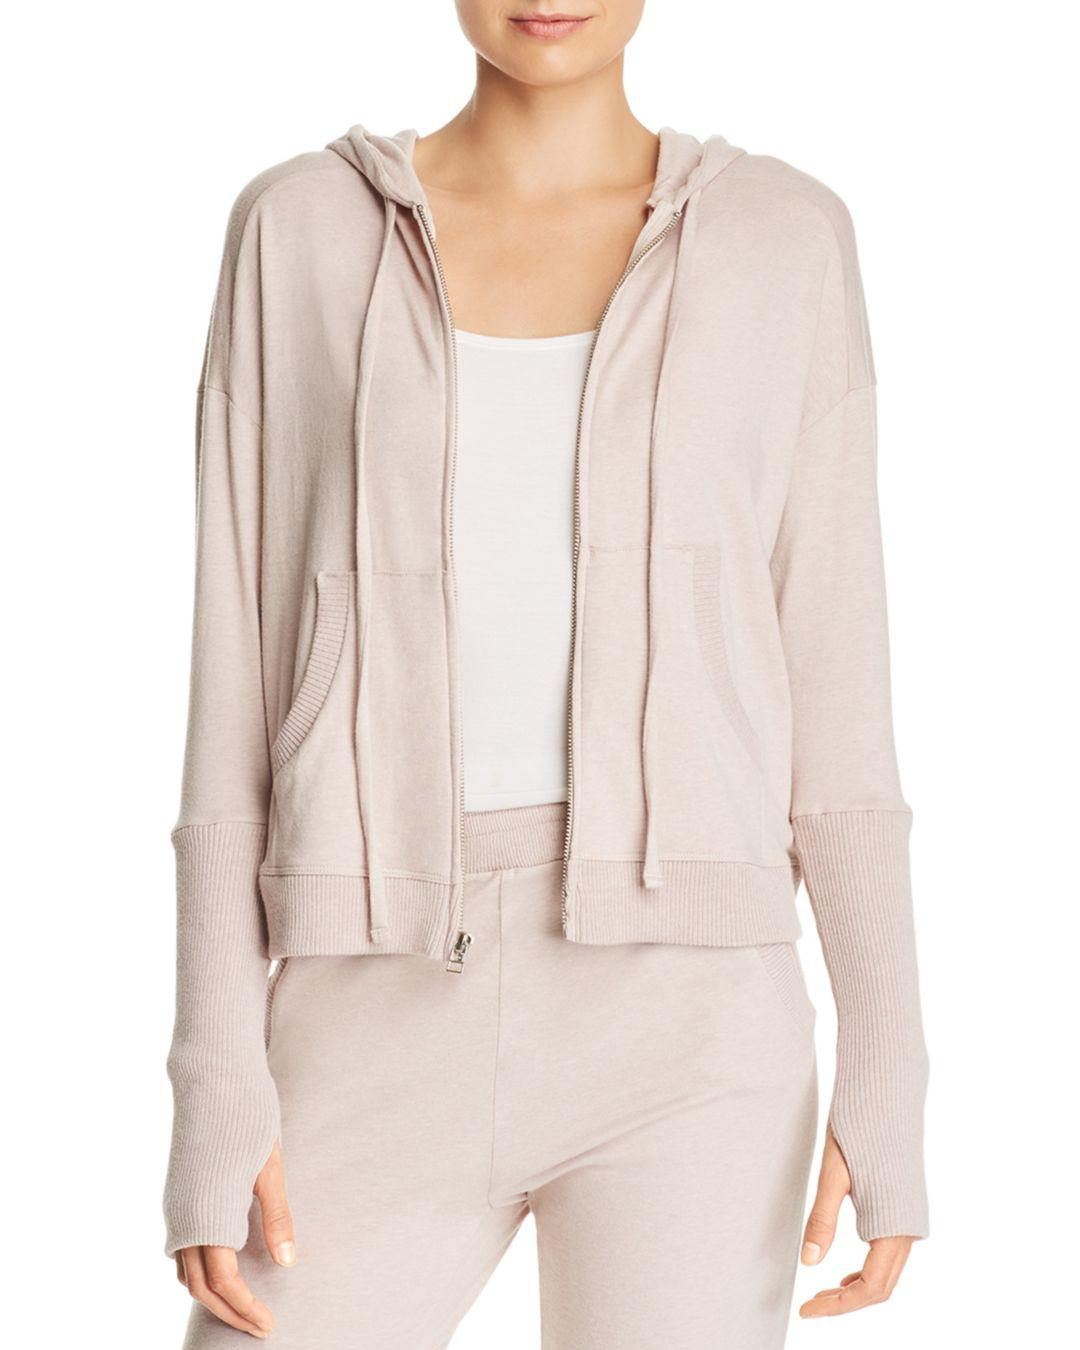 Lyst - Enza Costa Zip-front Hoodie in Pink 47e59a112